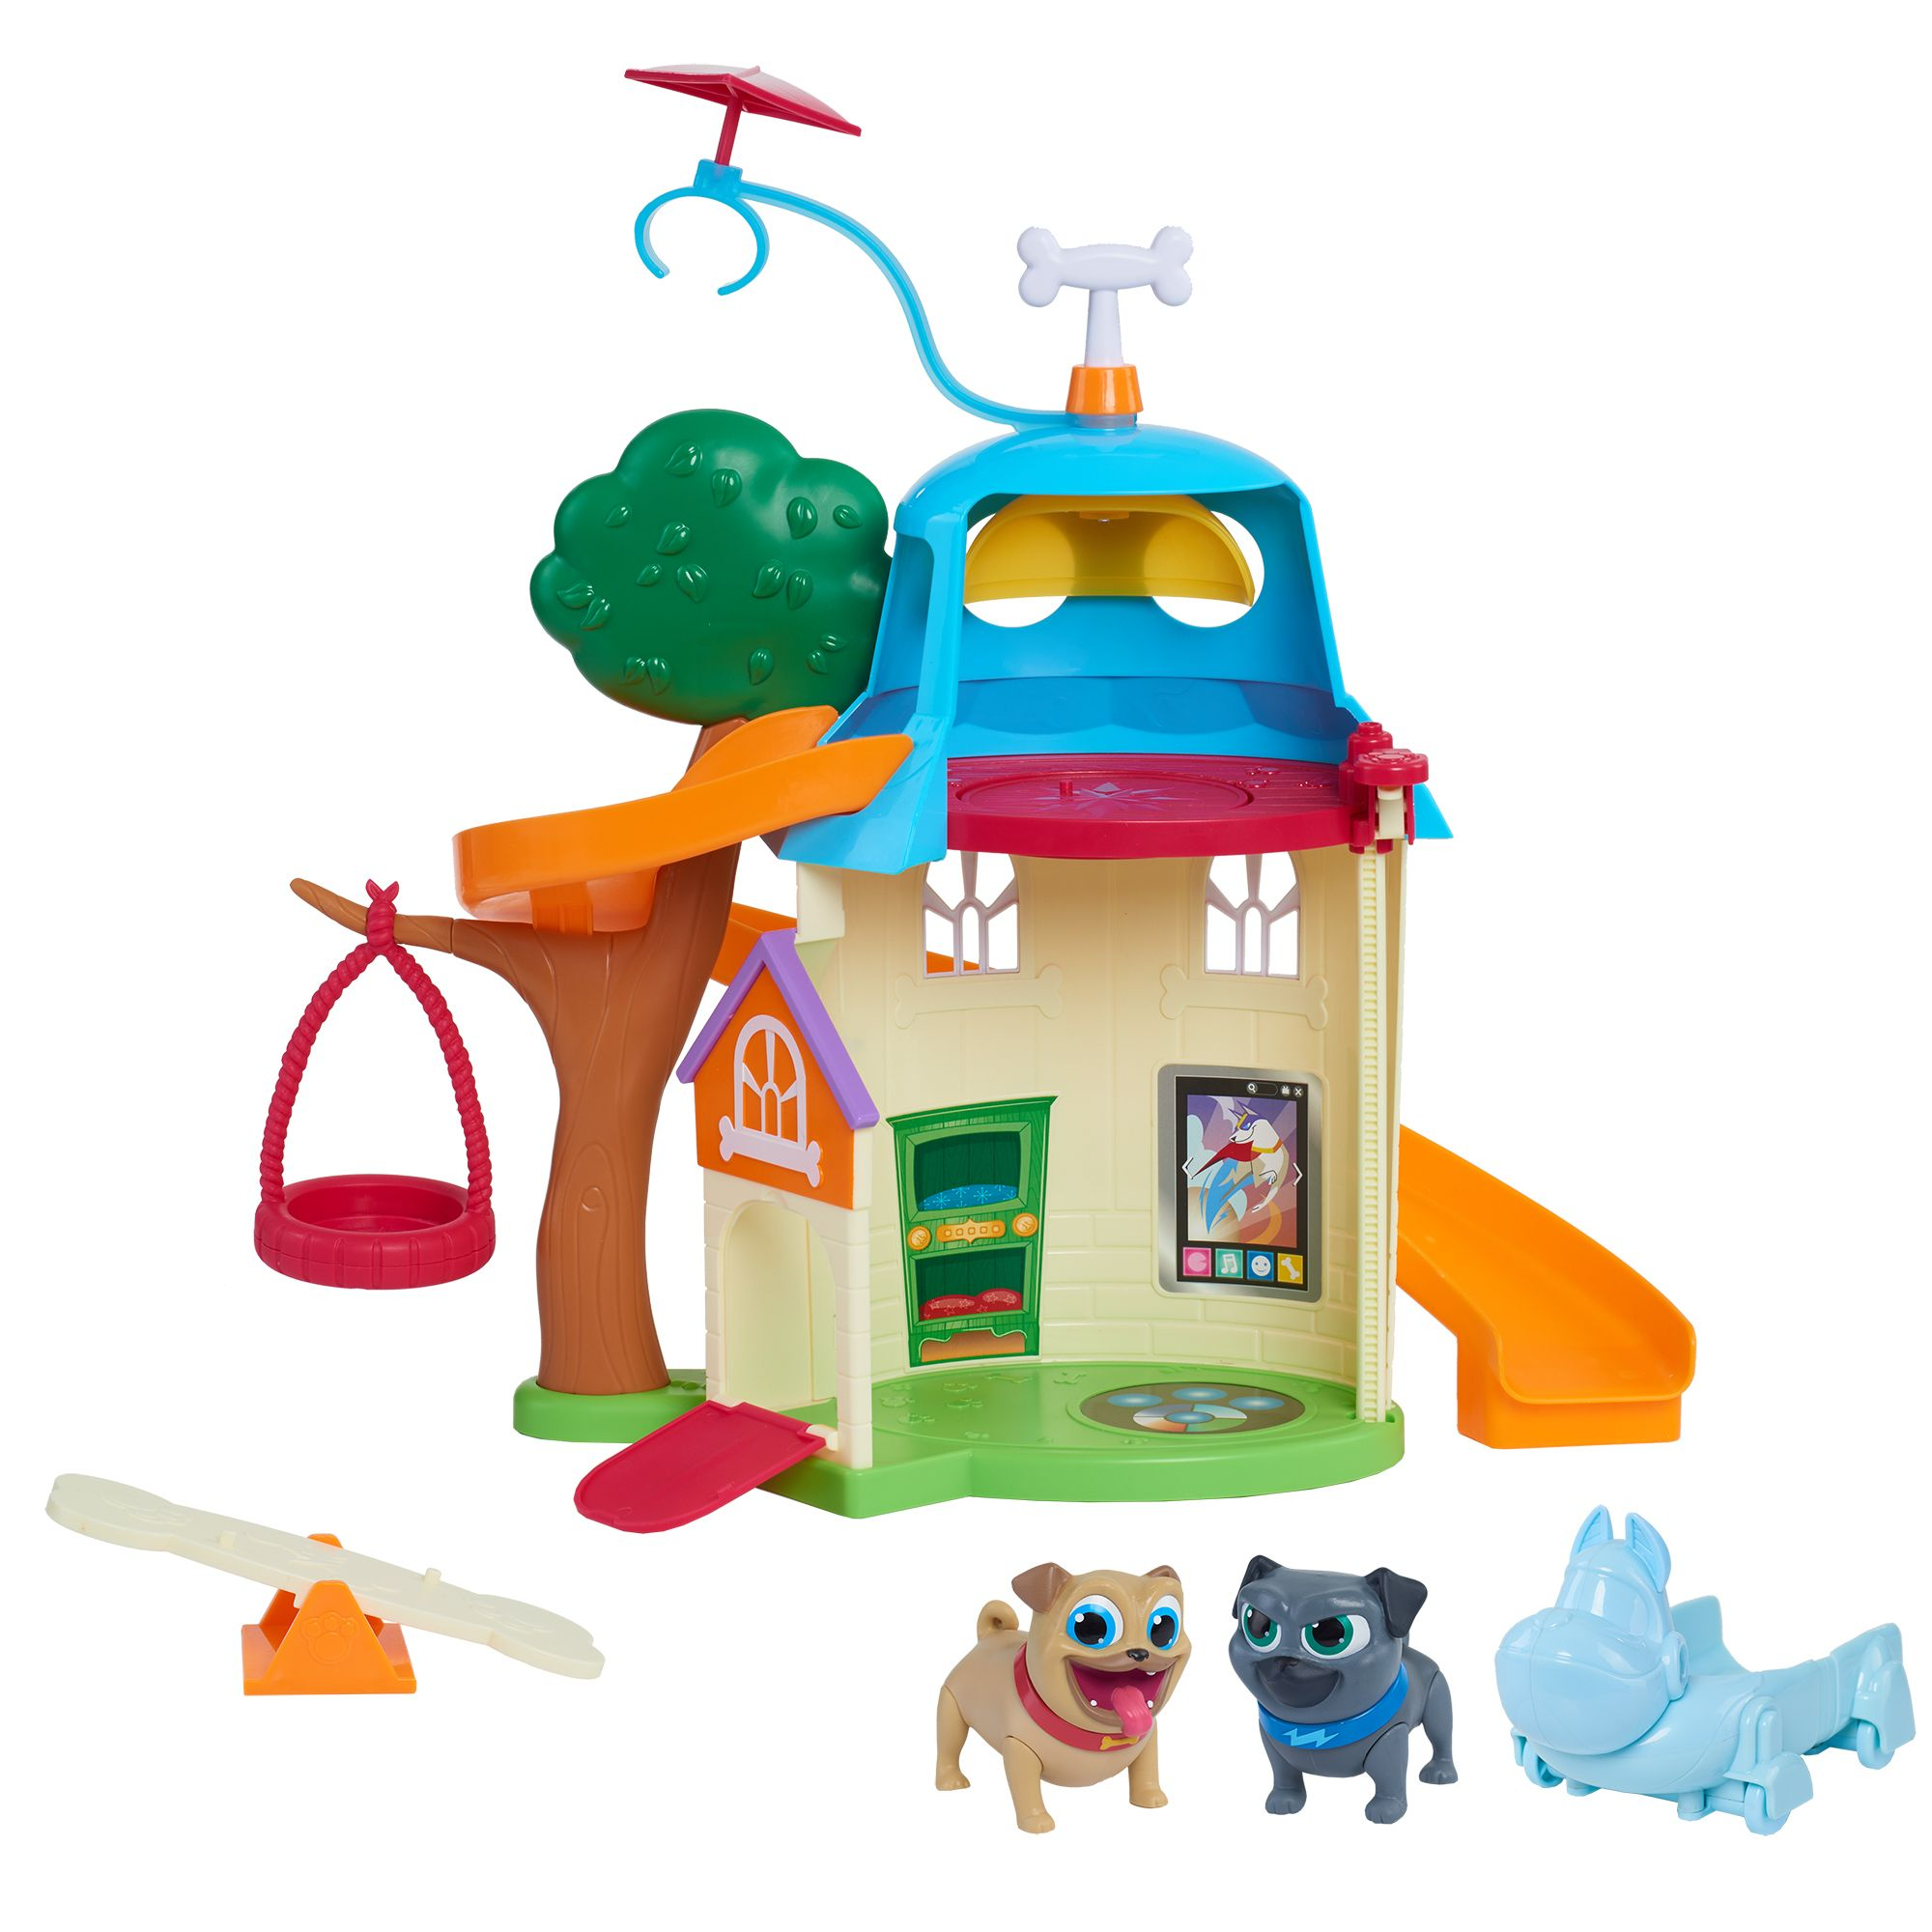 Disney Puppy Dog Pals Doghouse Toy puppies